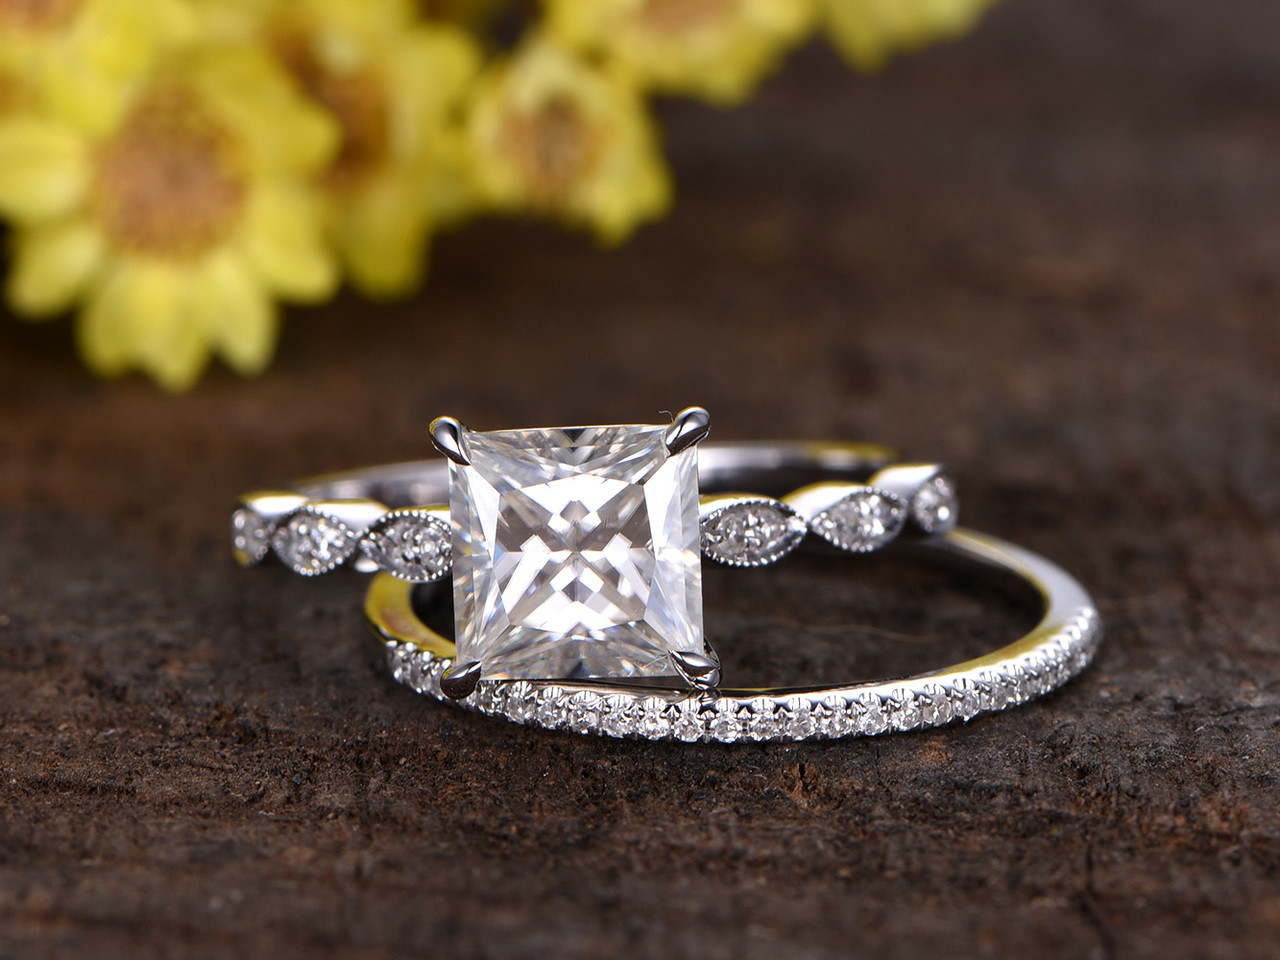 2 Carat Princess Cut Moissanite Engagement Ring Set Diamond Wedding